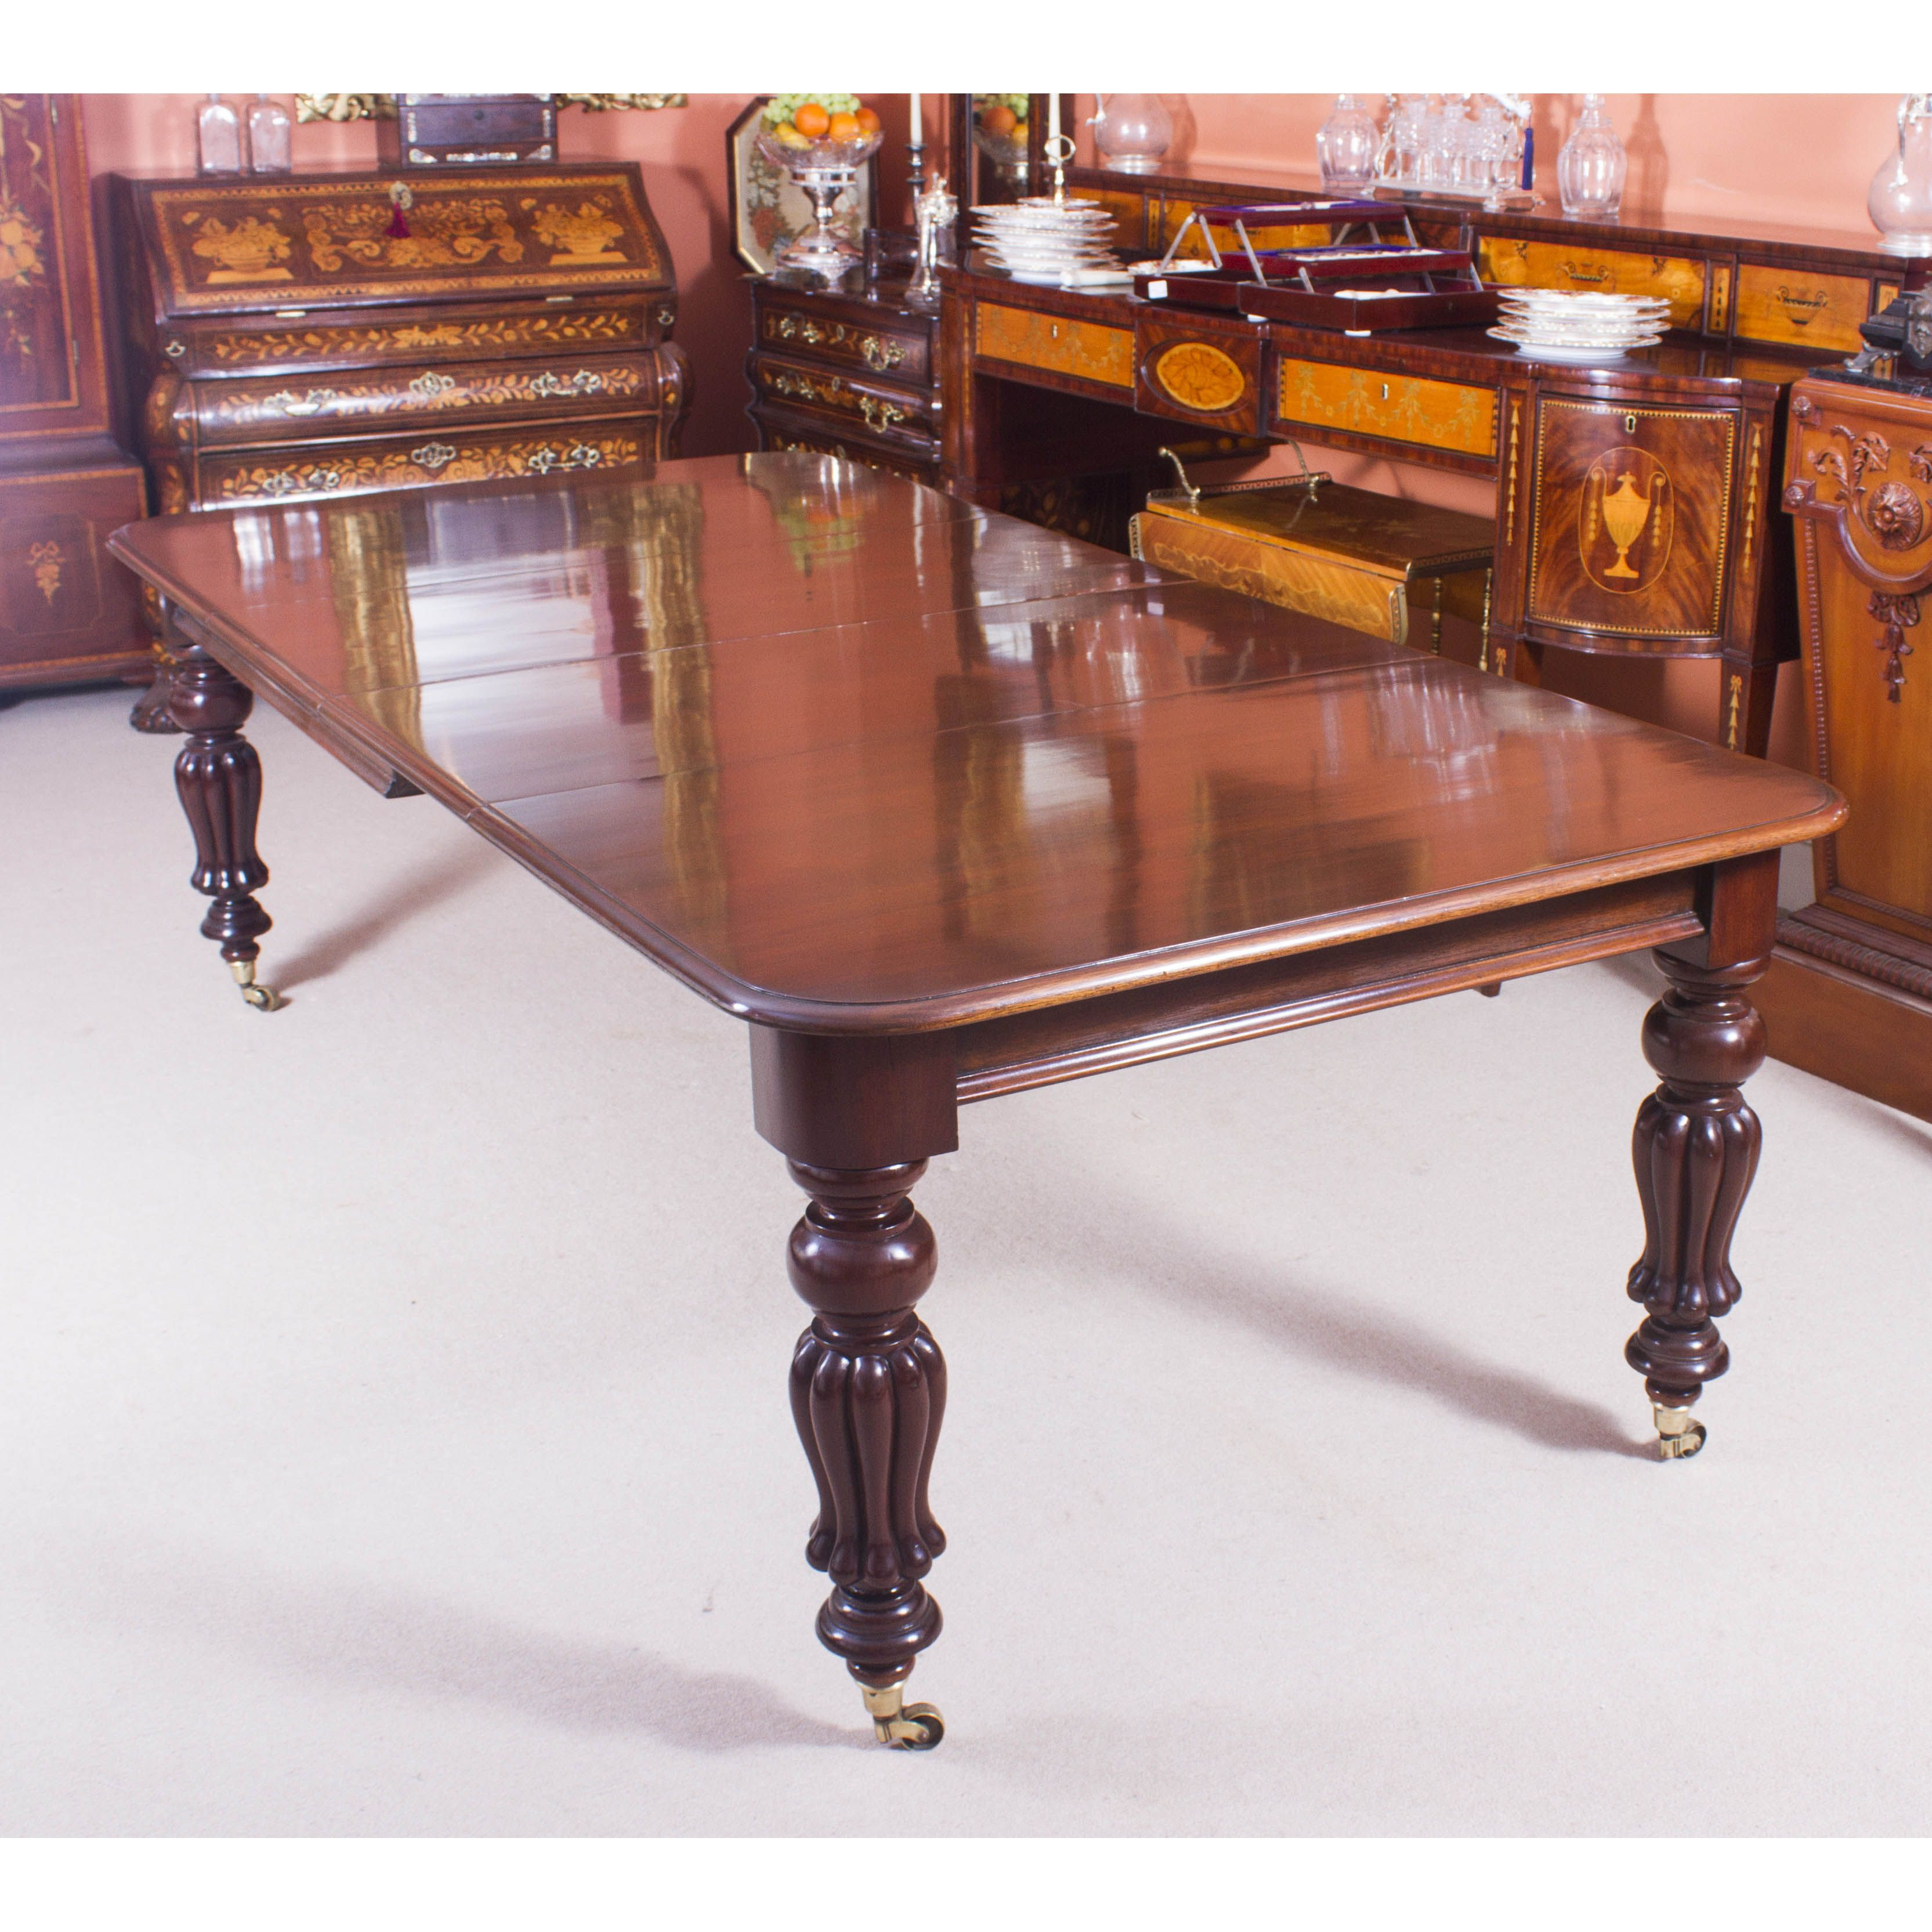 A Very Impressive Antique Victorian Extending Dining Table Circa 1860